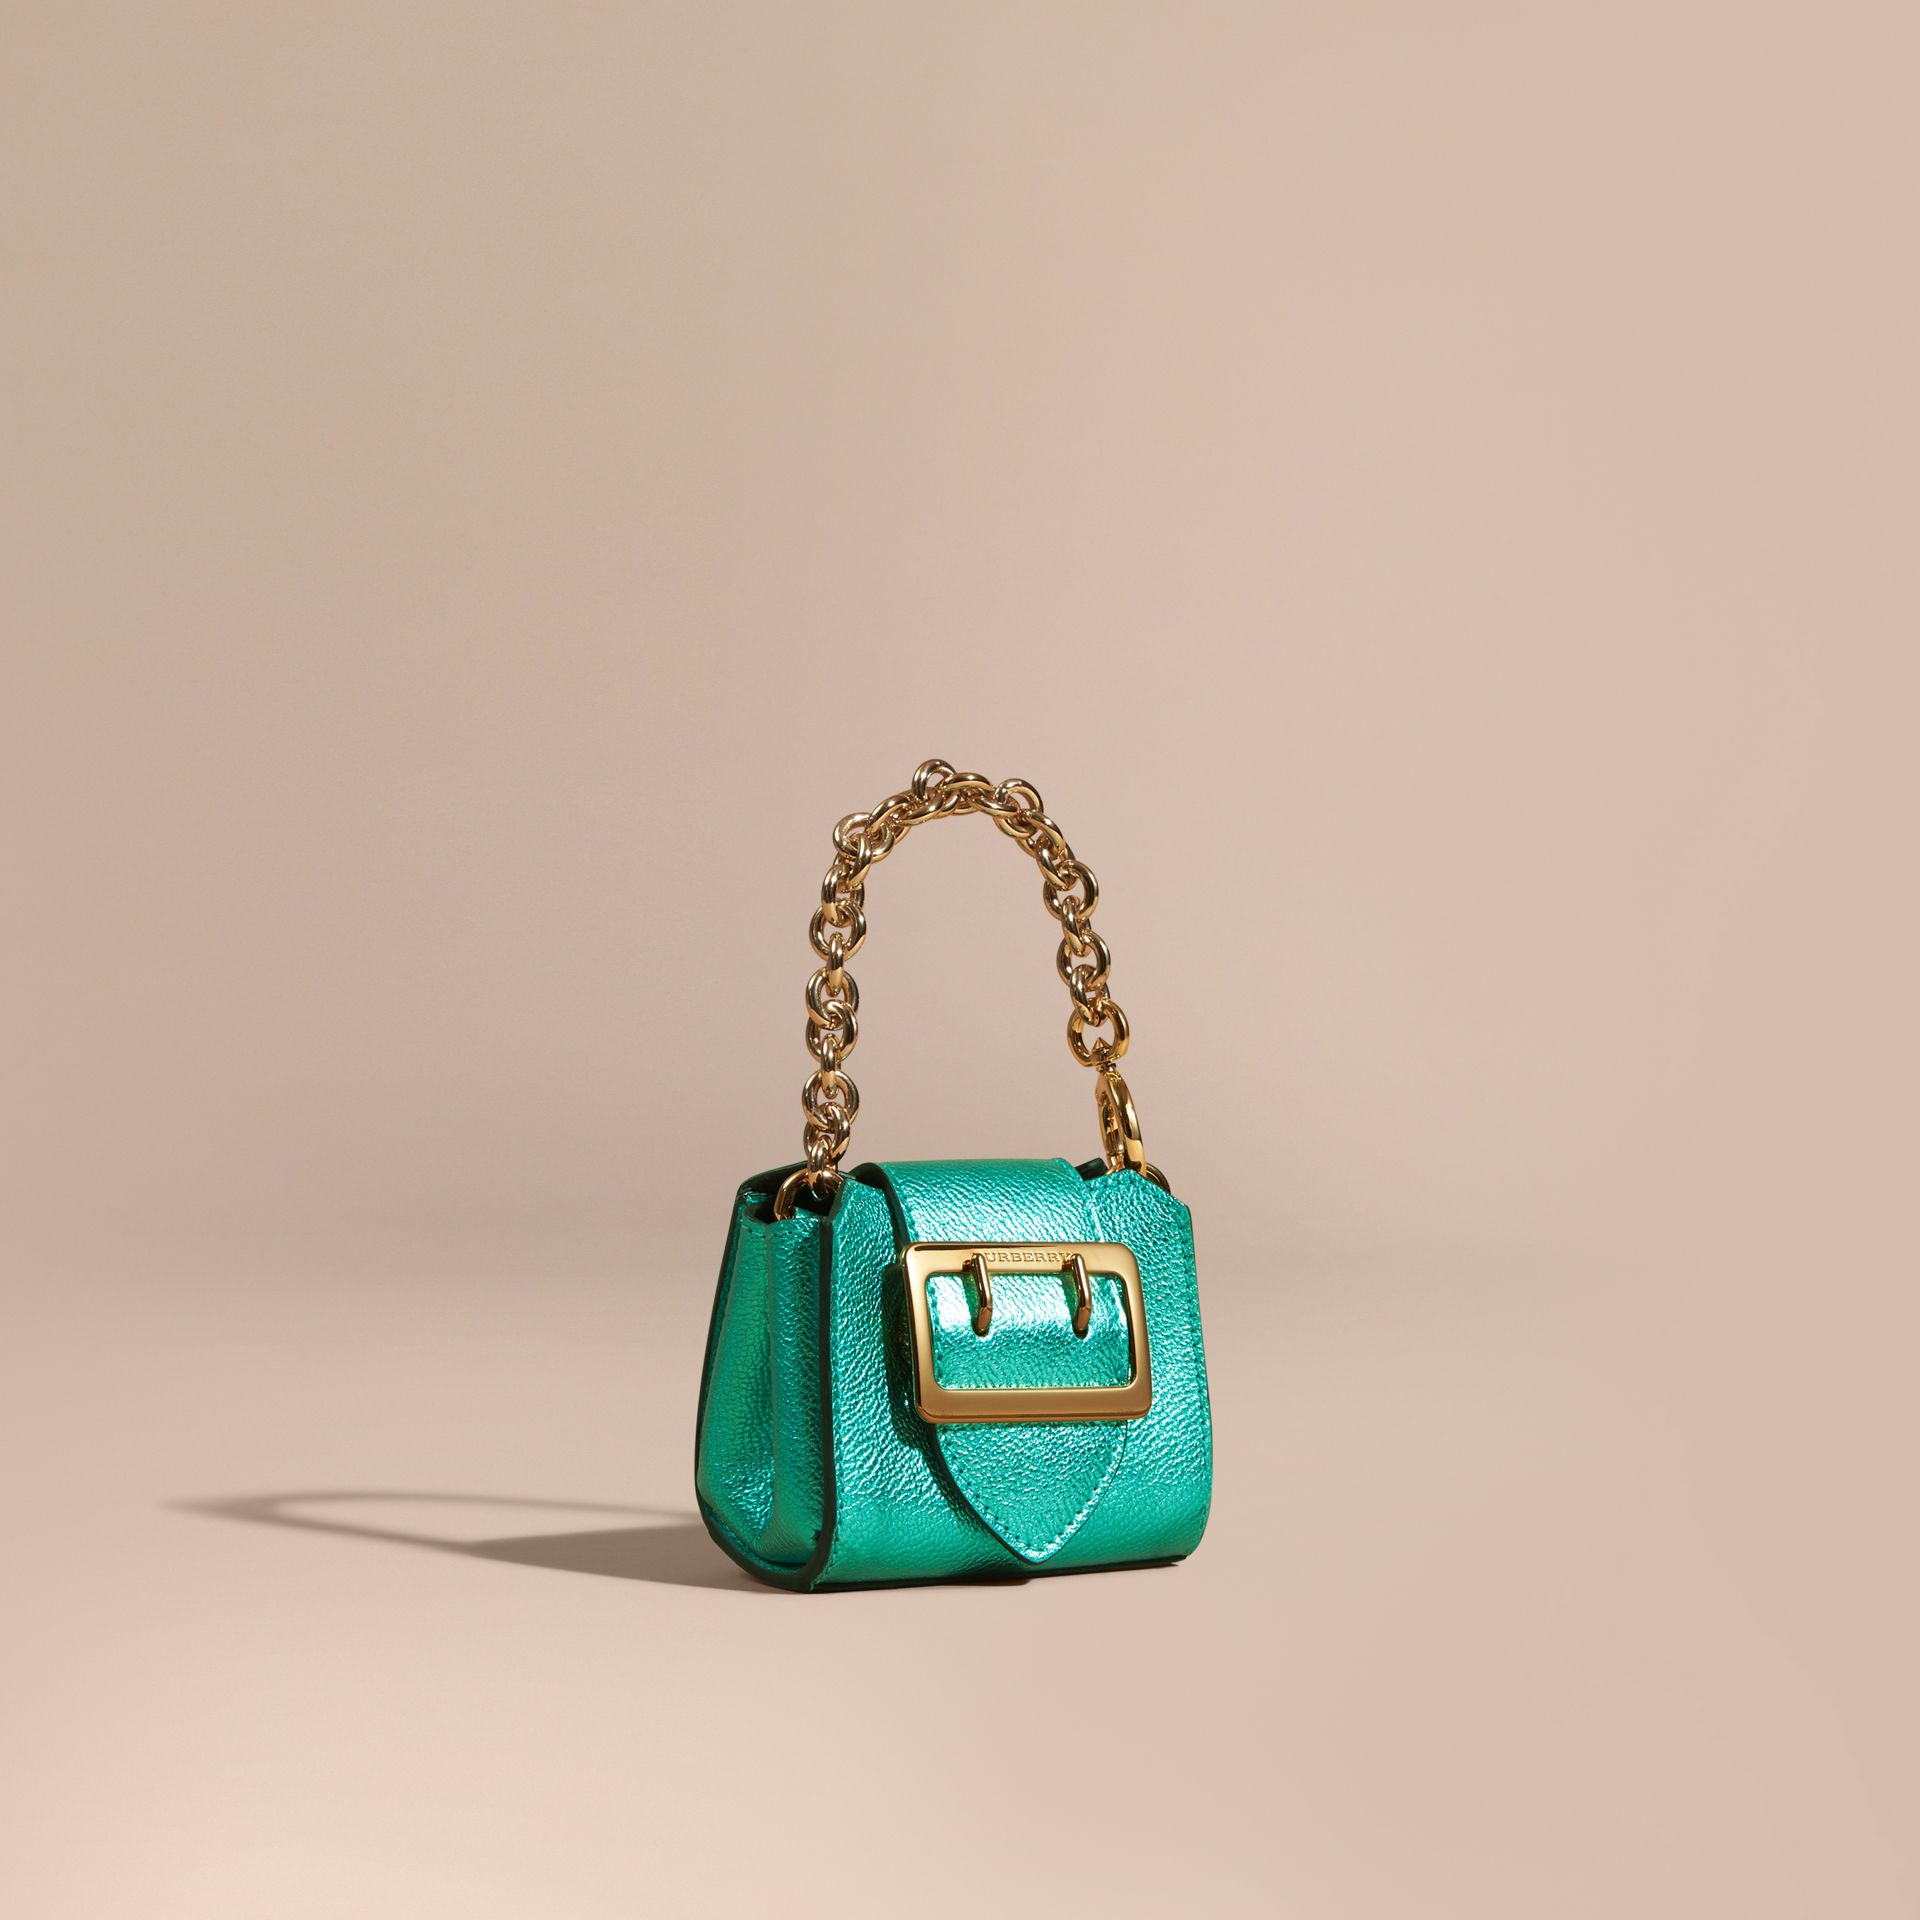 Emerald The Mini Buckle Tote Charm in Metallic Leather Emerald - gallery image 1